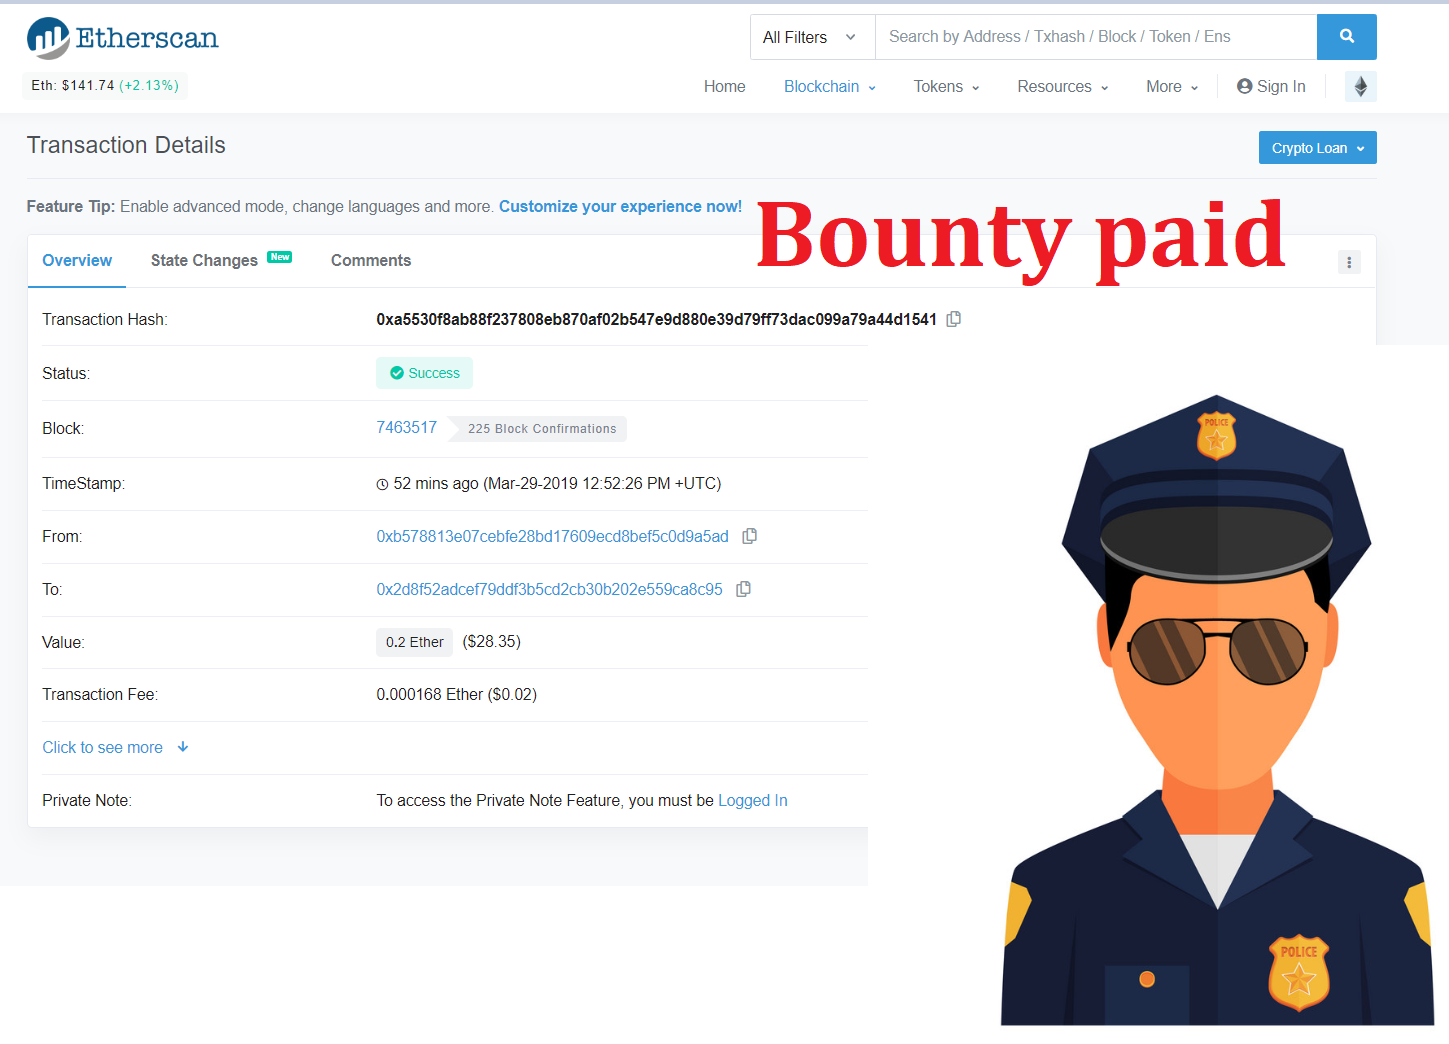 Fake airdrop discovered by AirdropAlert user, Bounty paid!